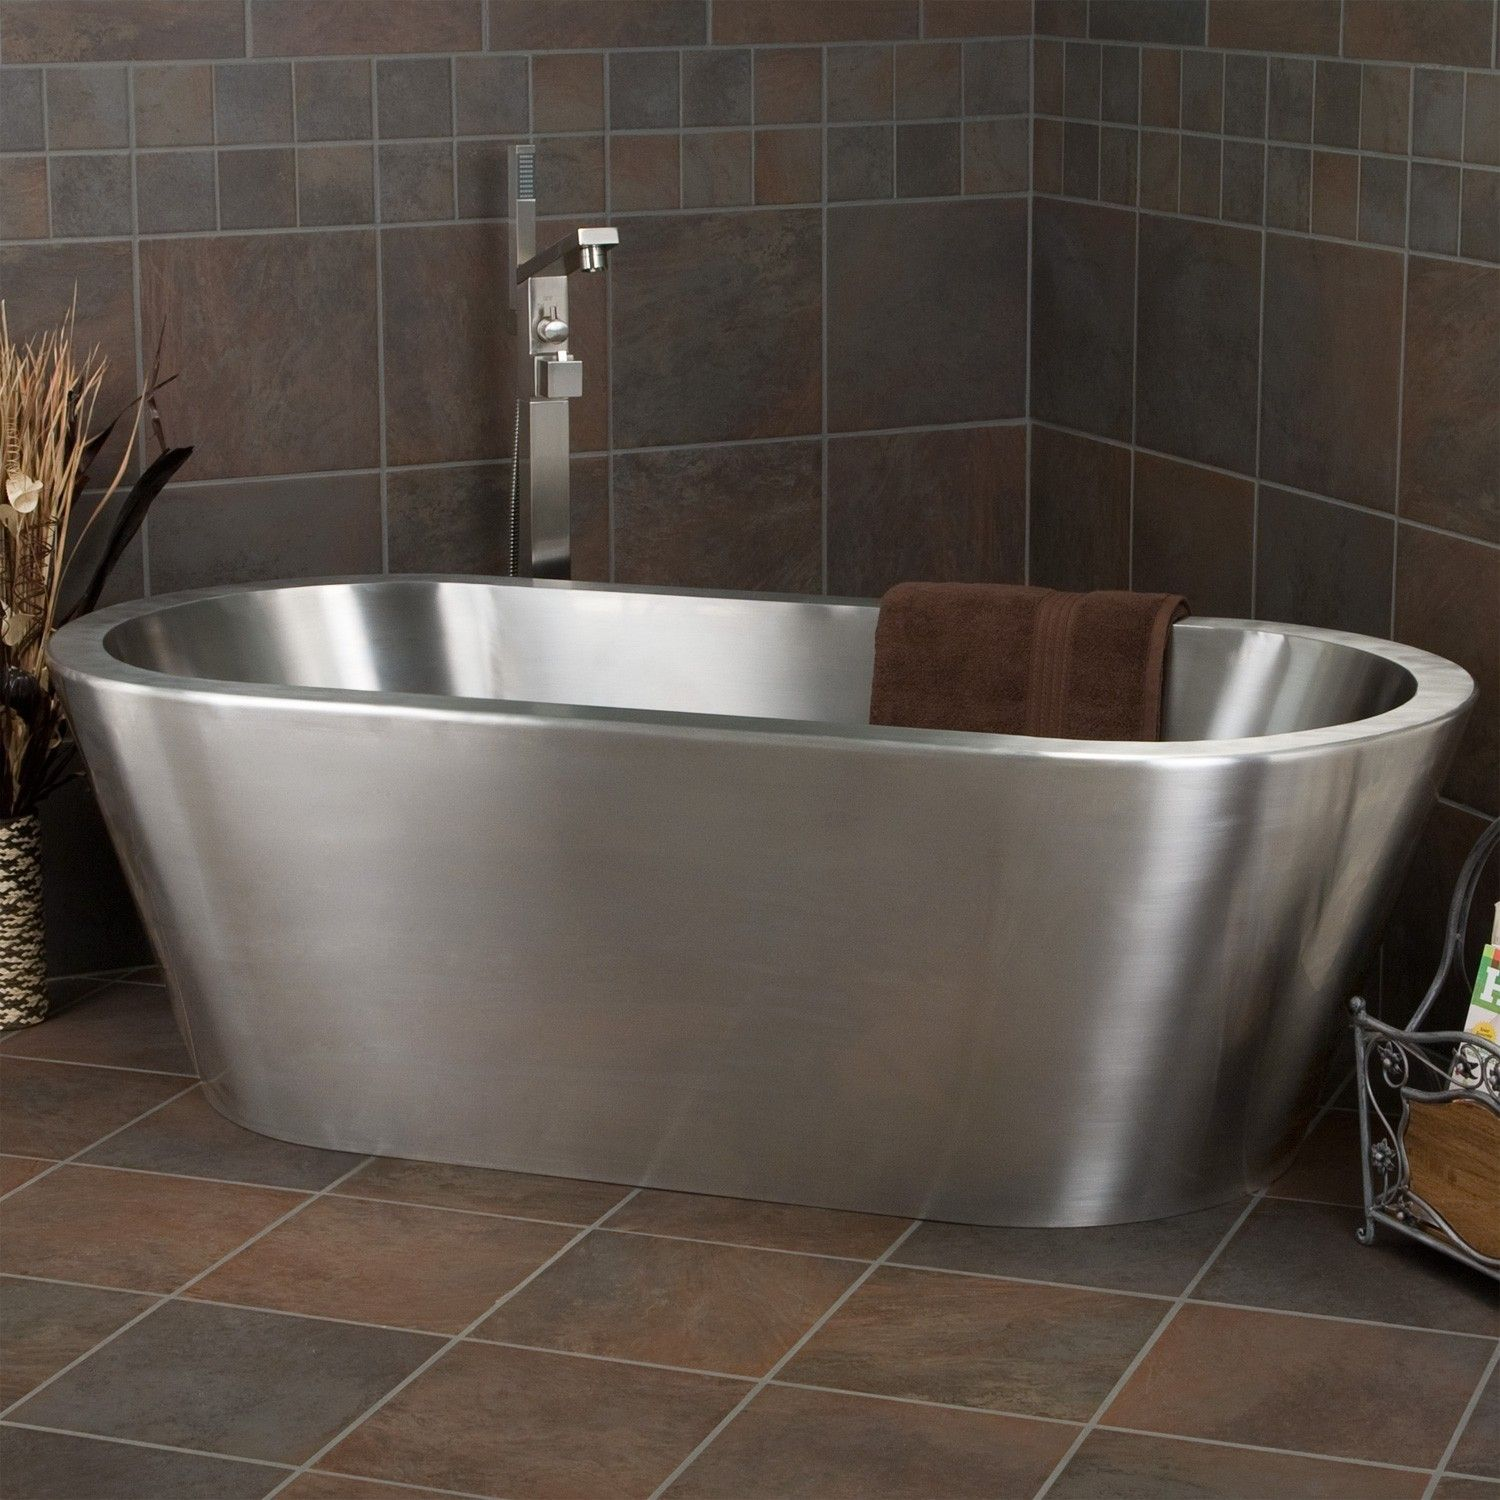 Brushed Stainless Steel Freestanding Tub With Single Tap